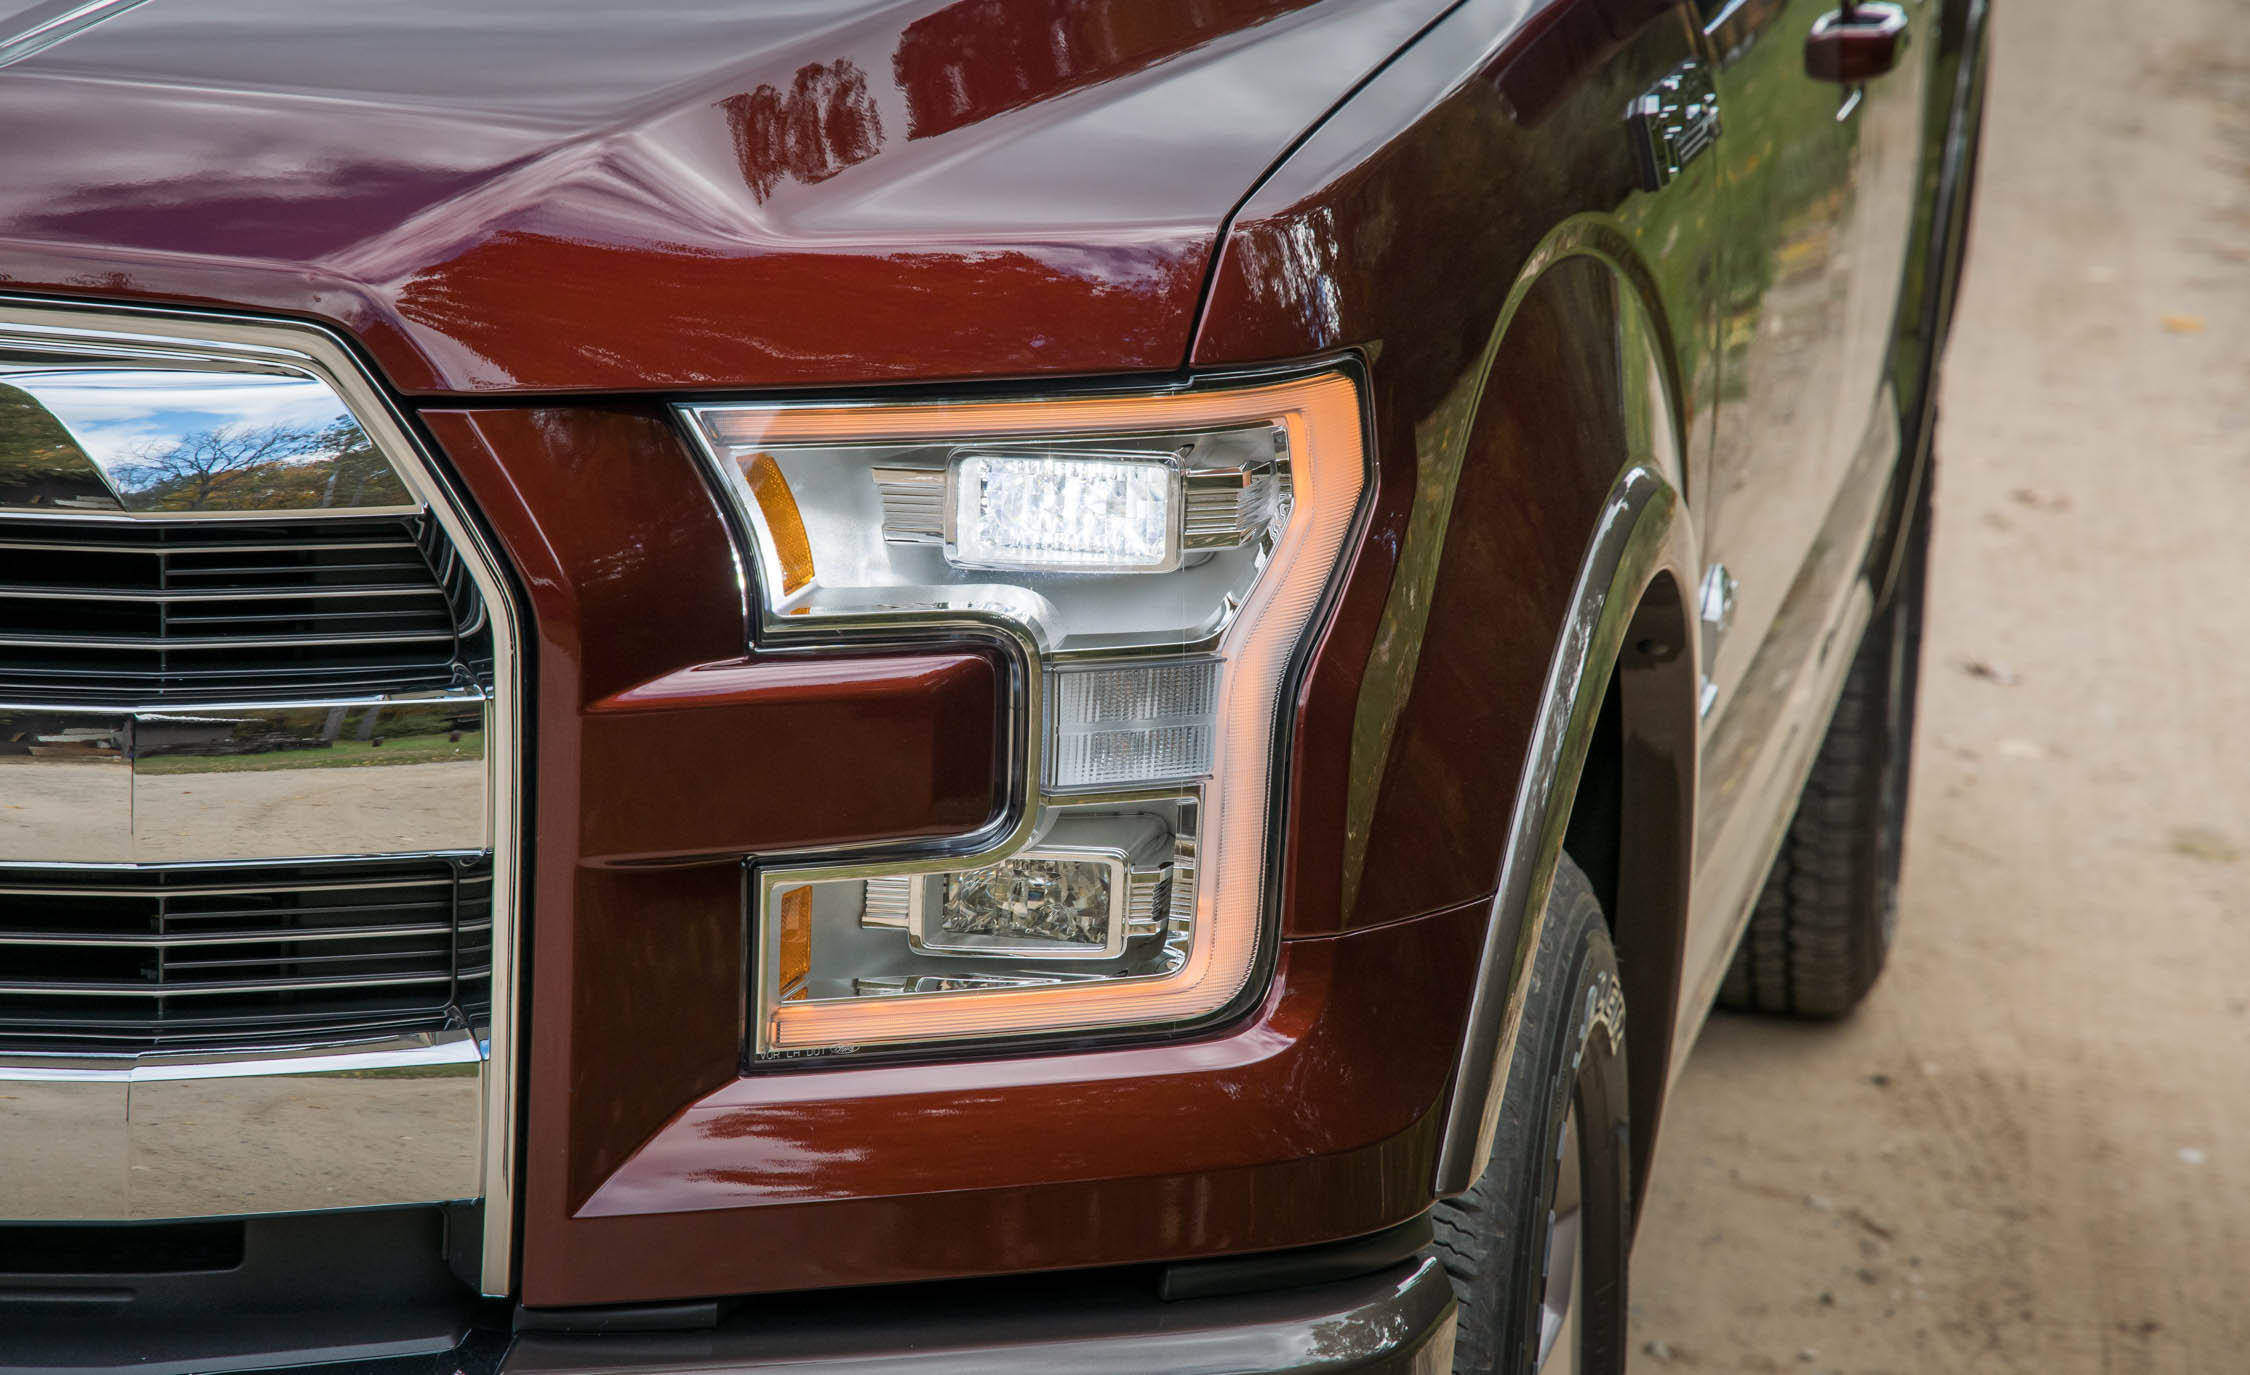 2017 Ford F 150 King Ranch Exterior View Headlight (Photo 43 of 50)